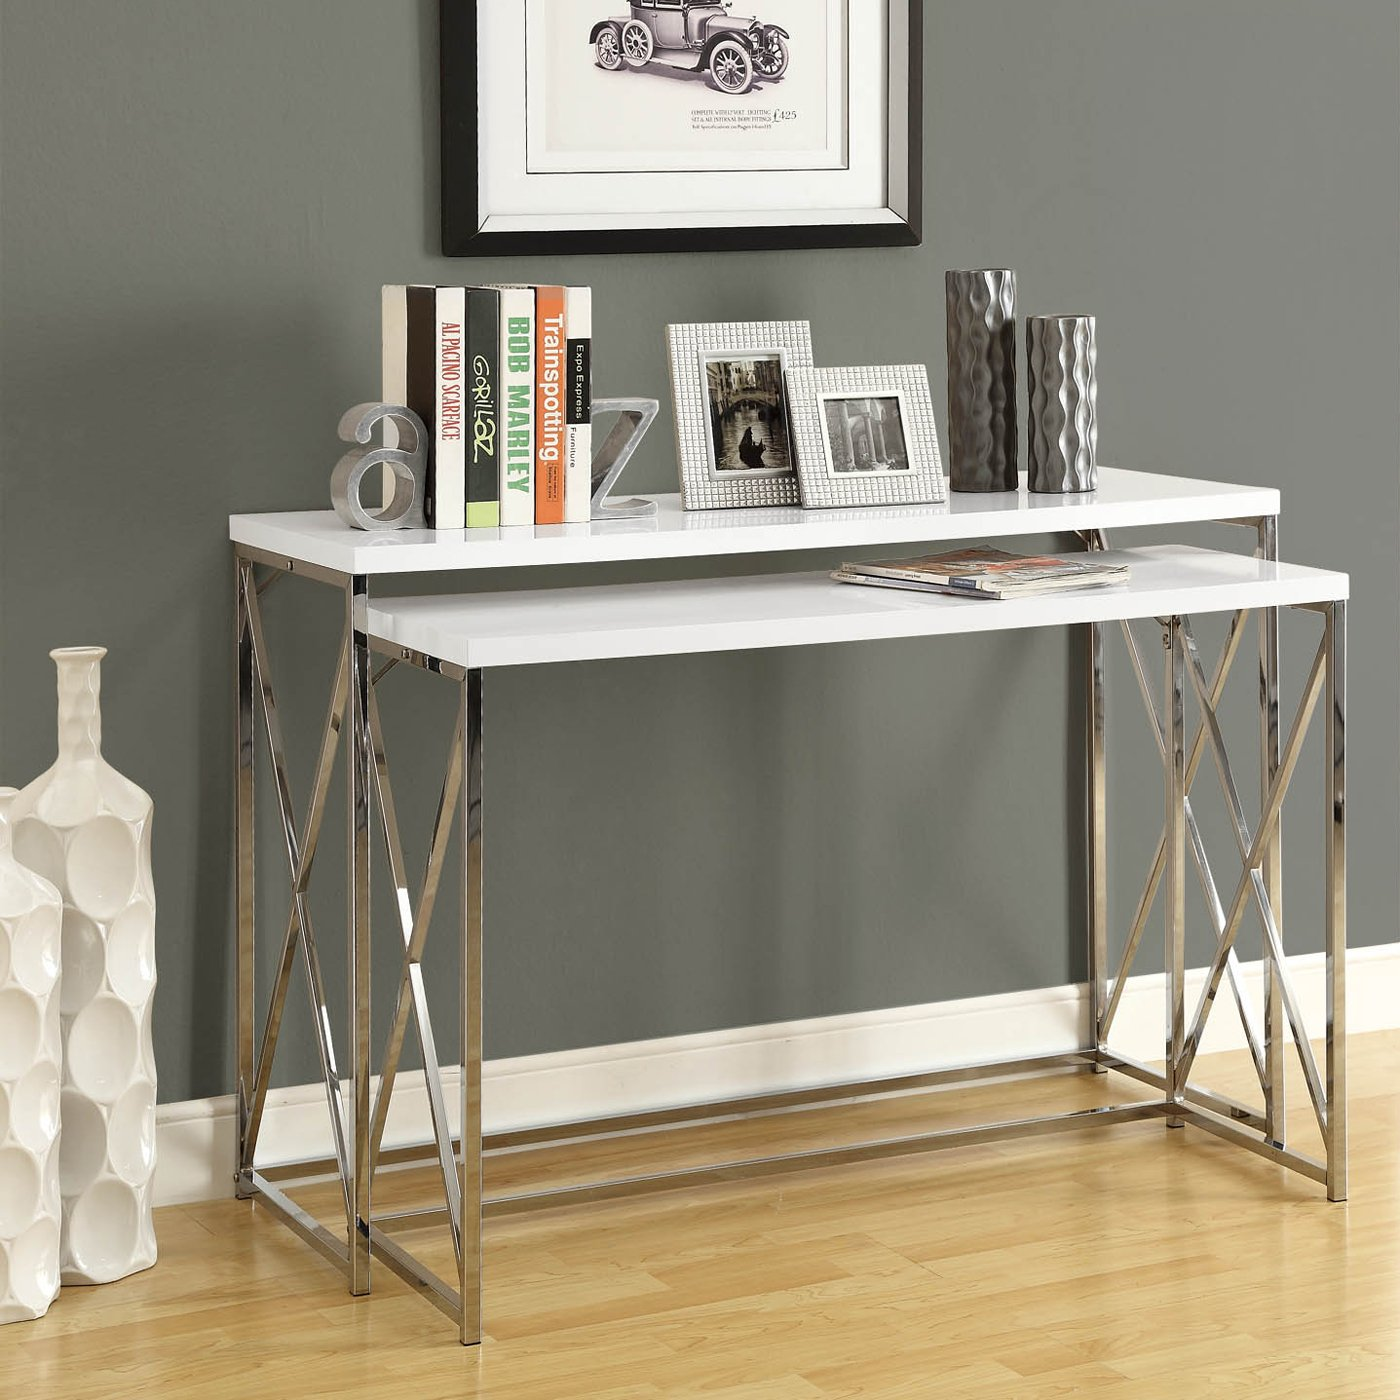 skinny side table appears save the space without lacking style modern idea with white top and stainless steel beam wooden floor beneath gray painted wall ceramic accent vitra